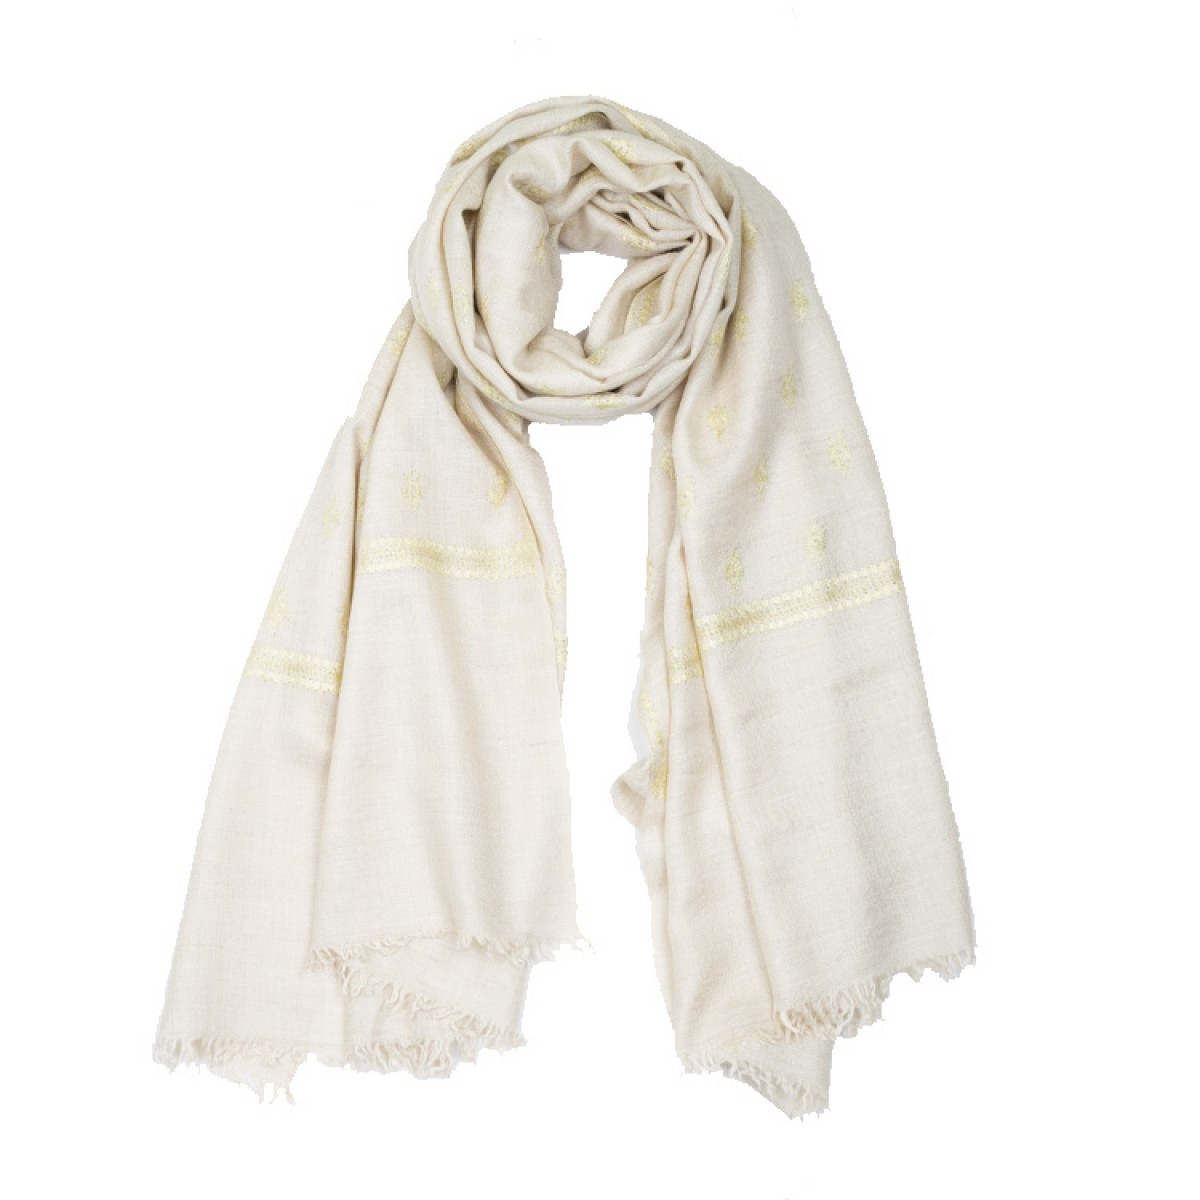 Embroidered Pashmina Stole - Natural & Light Green